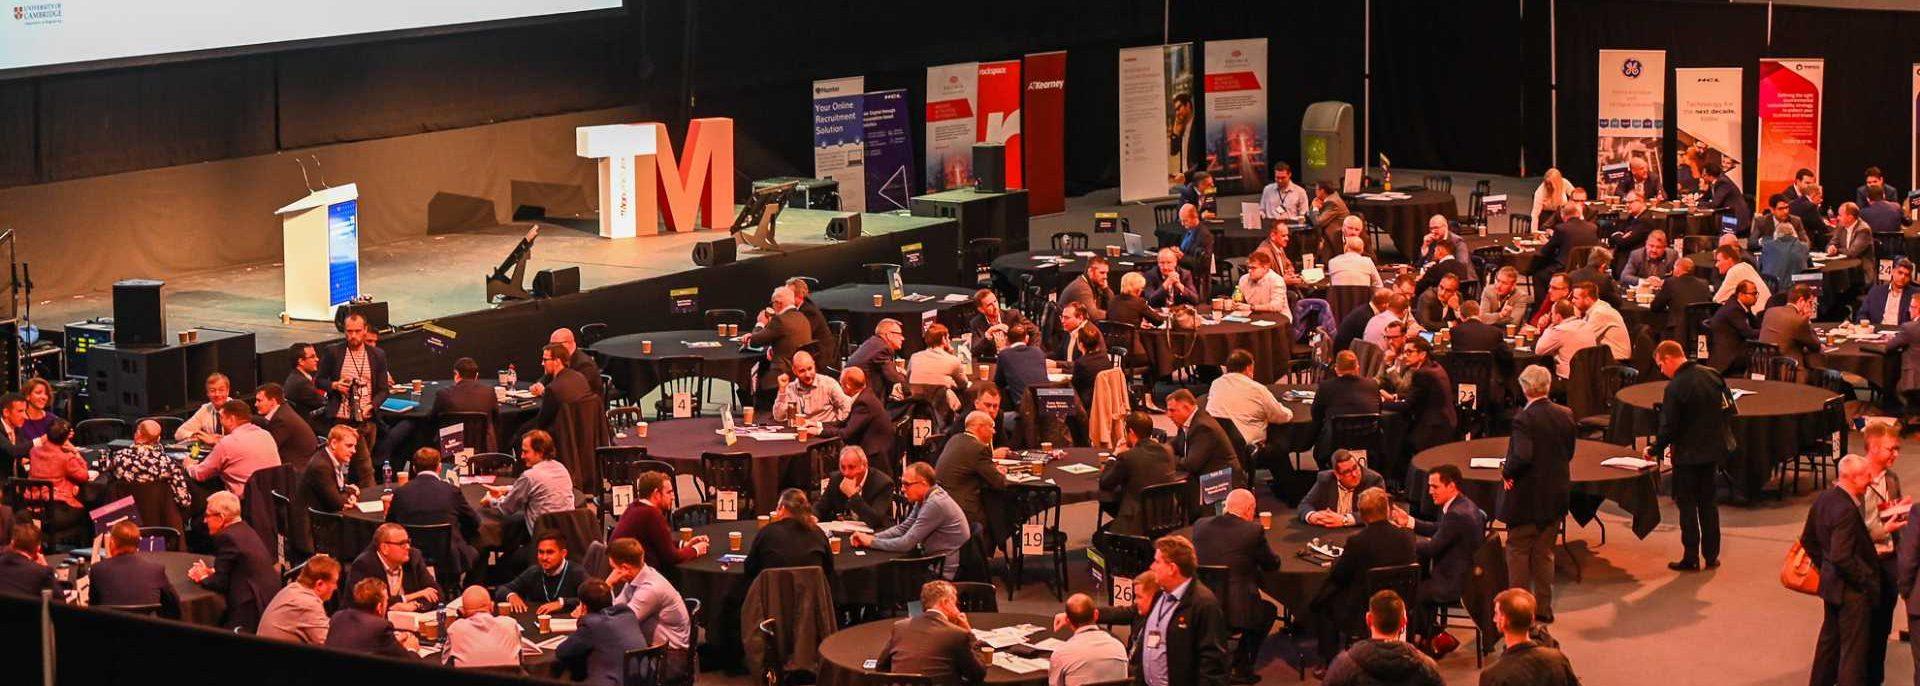 Manufacturing Leaders' Summit 2019 - image courtesy of The Manufacturer